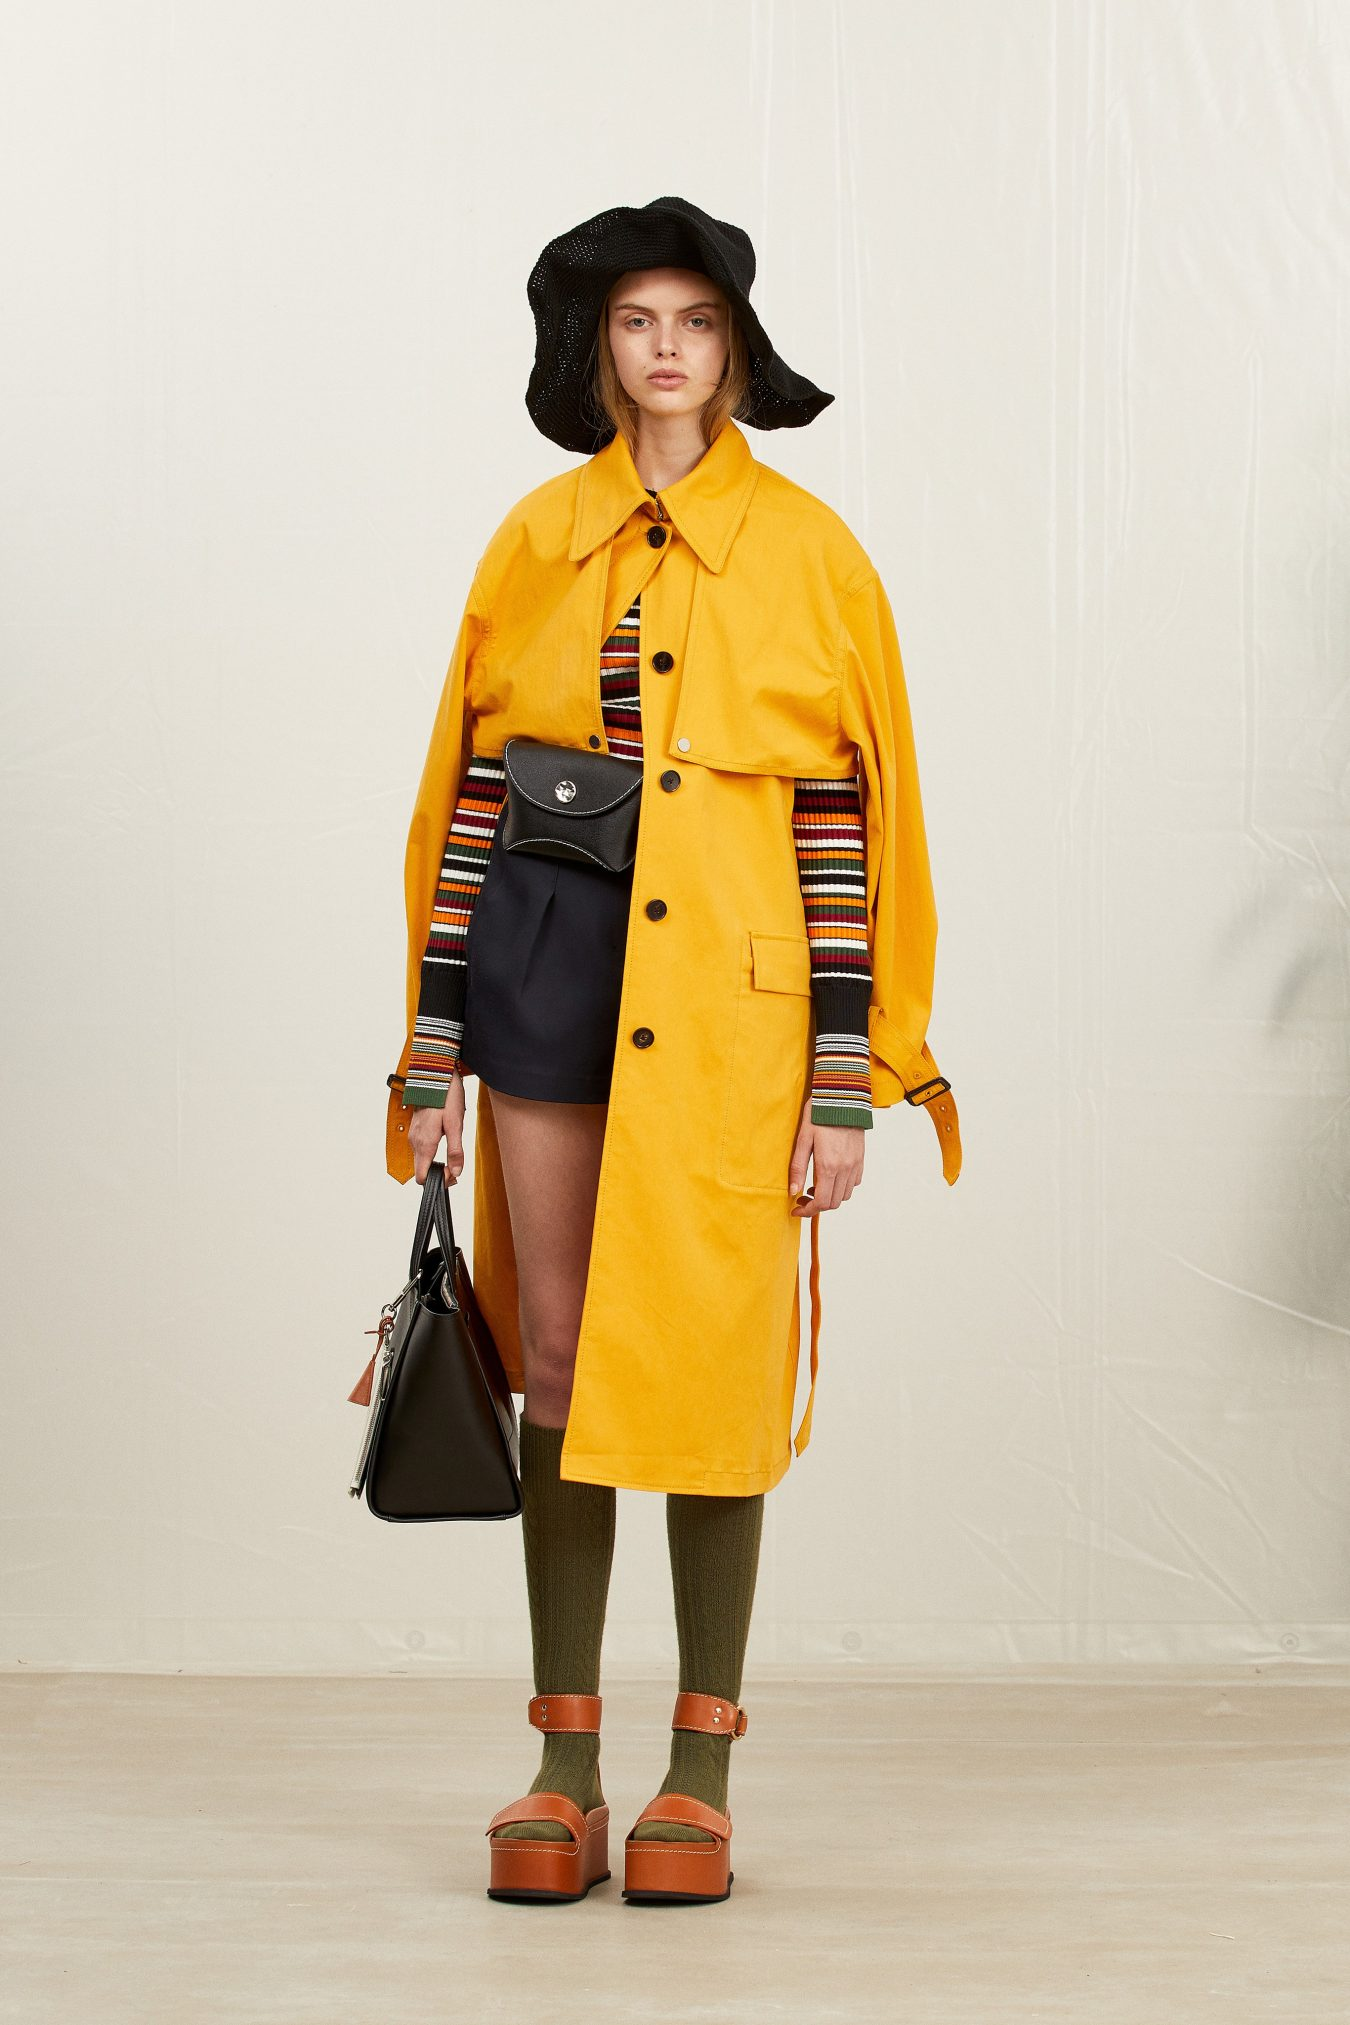 3.1 Phillip Lim Resort 2019 Collection